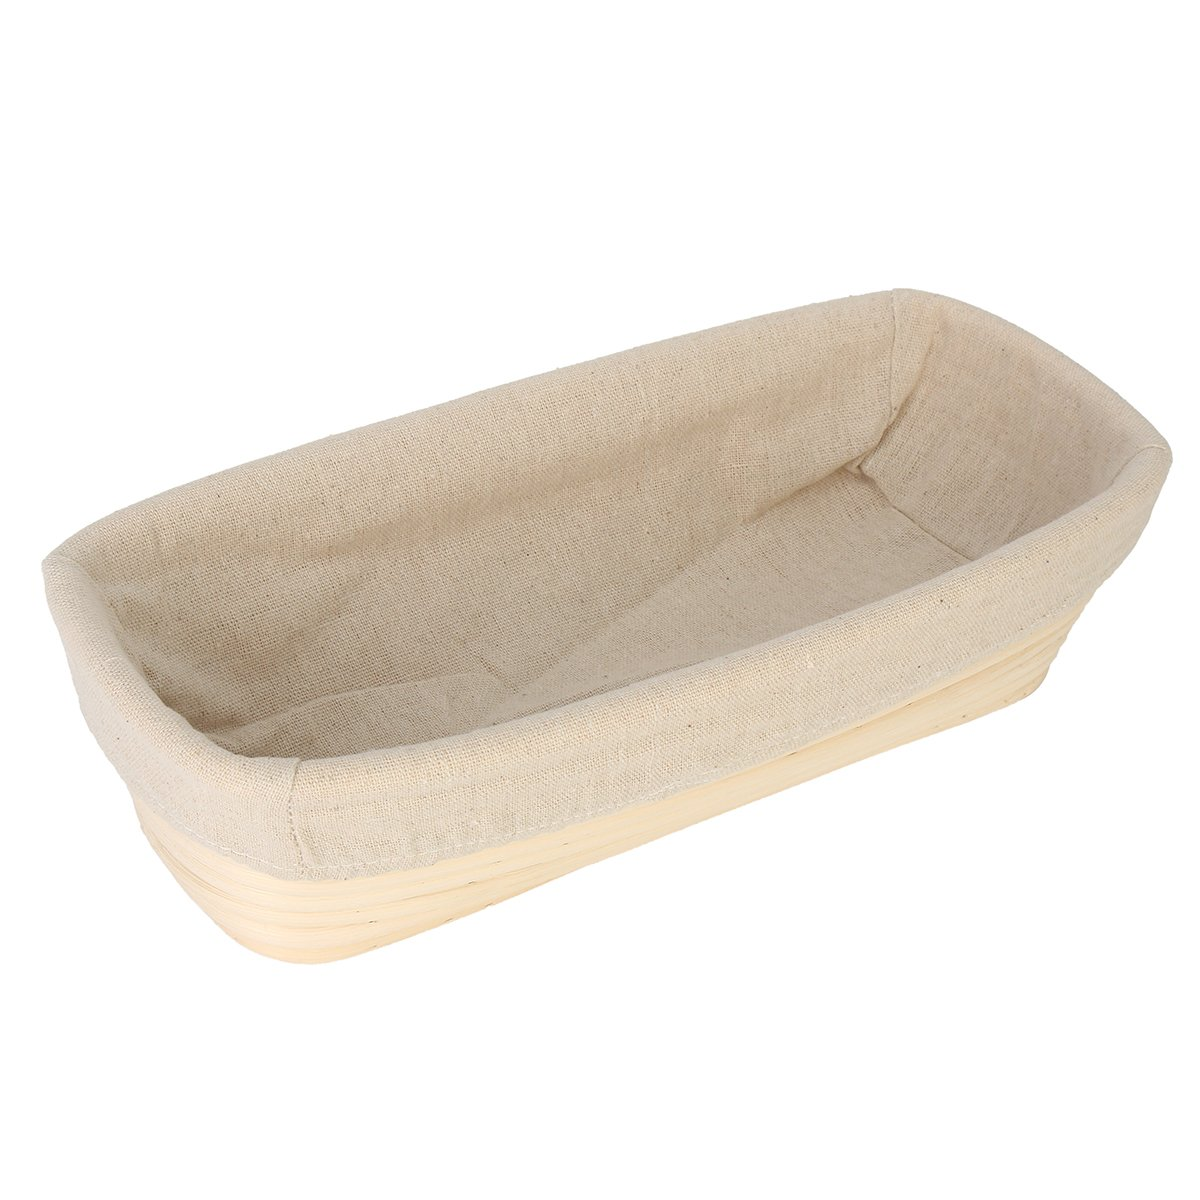 BESTOMZ Bread Proofing Basket with Liner Cloth Brotform Banneton Dough Bread Rising Basket 12 Inch Rectangle